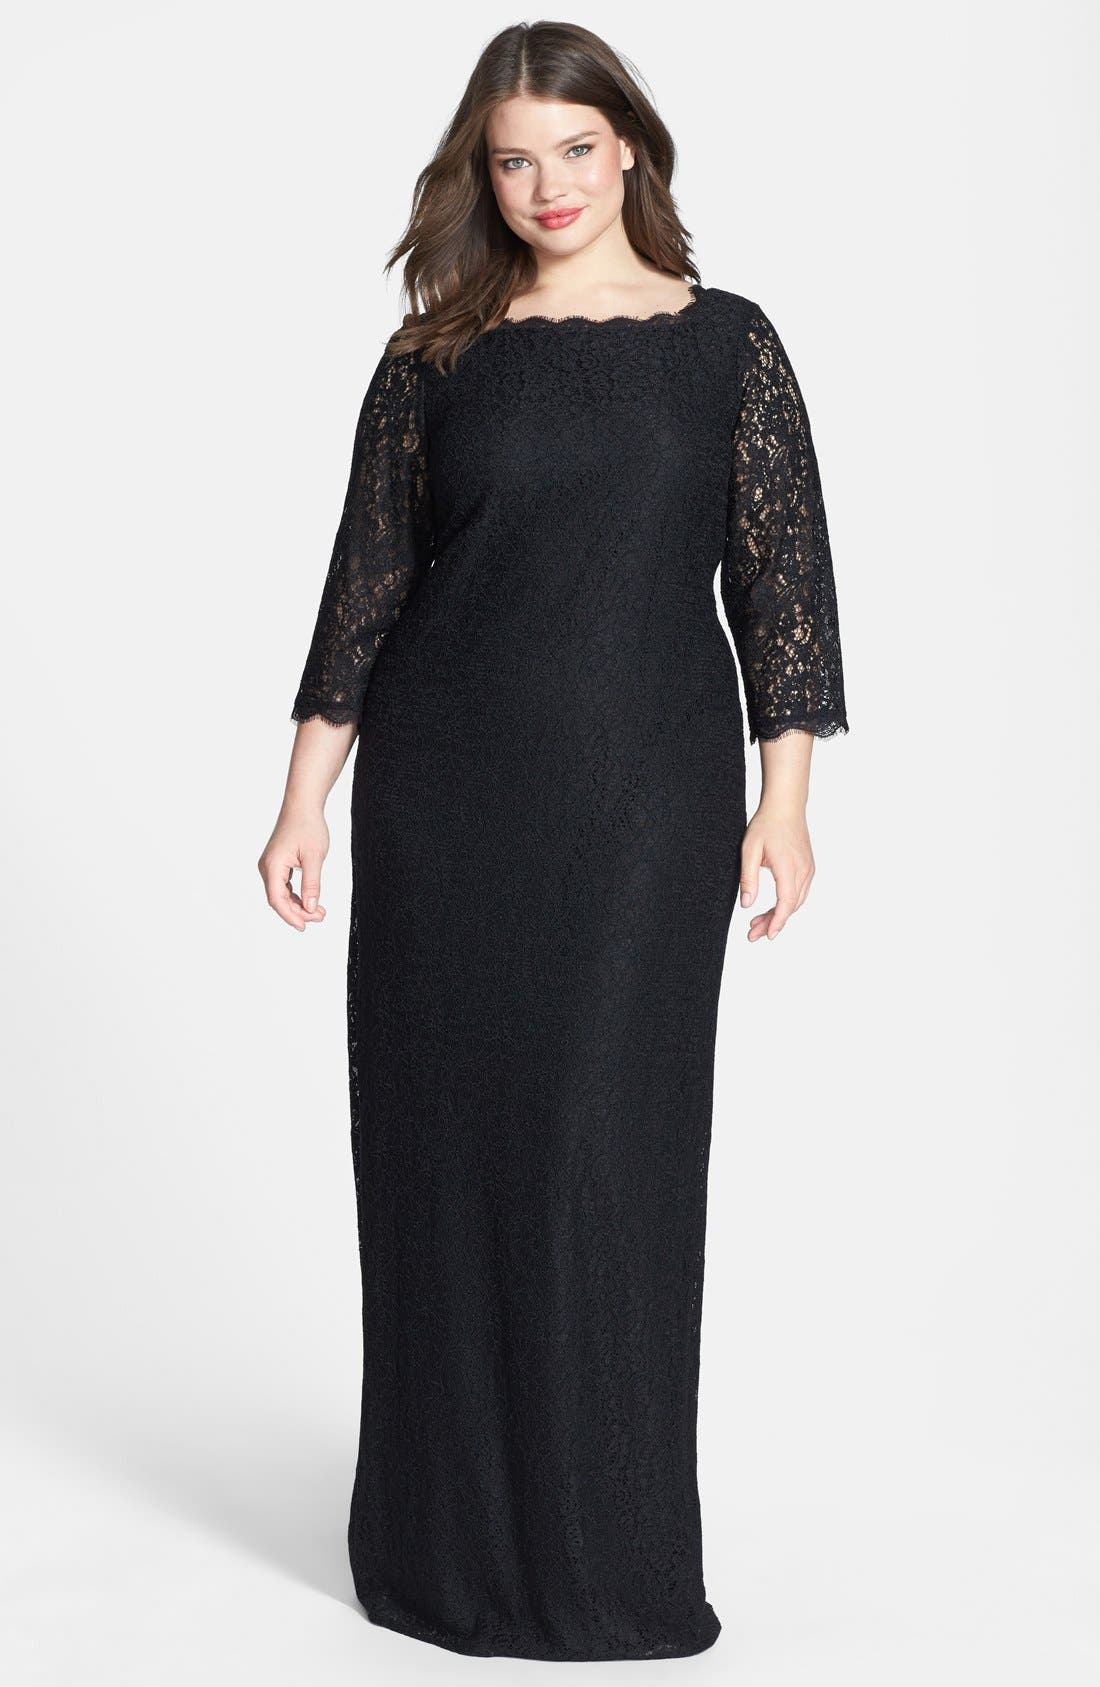 Alternate Image 1 Selected - Adrianna Papell Scalloped Lace Gown (Plus Size)